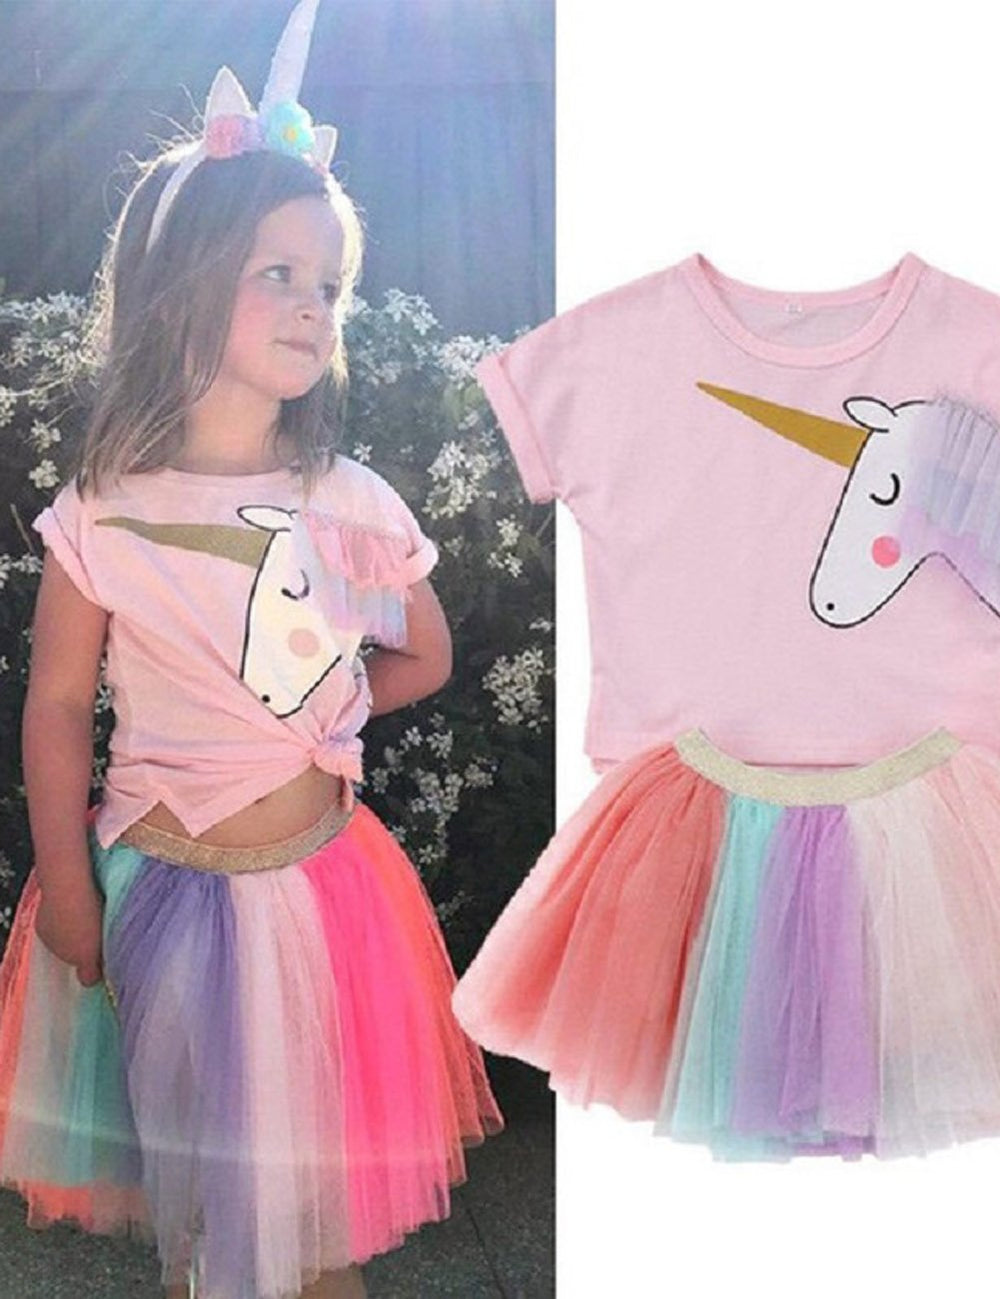 e80e0fd4150 ... Kids Unicorn Rainbow Lace Tutu Tulle Birthday Wedding Party Dress. baby  girl unicorn dress